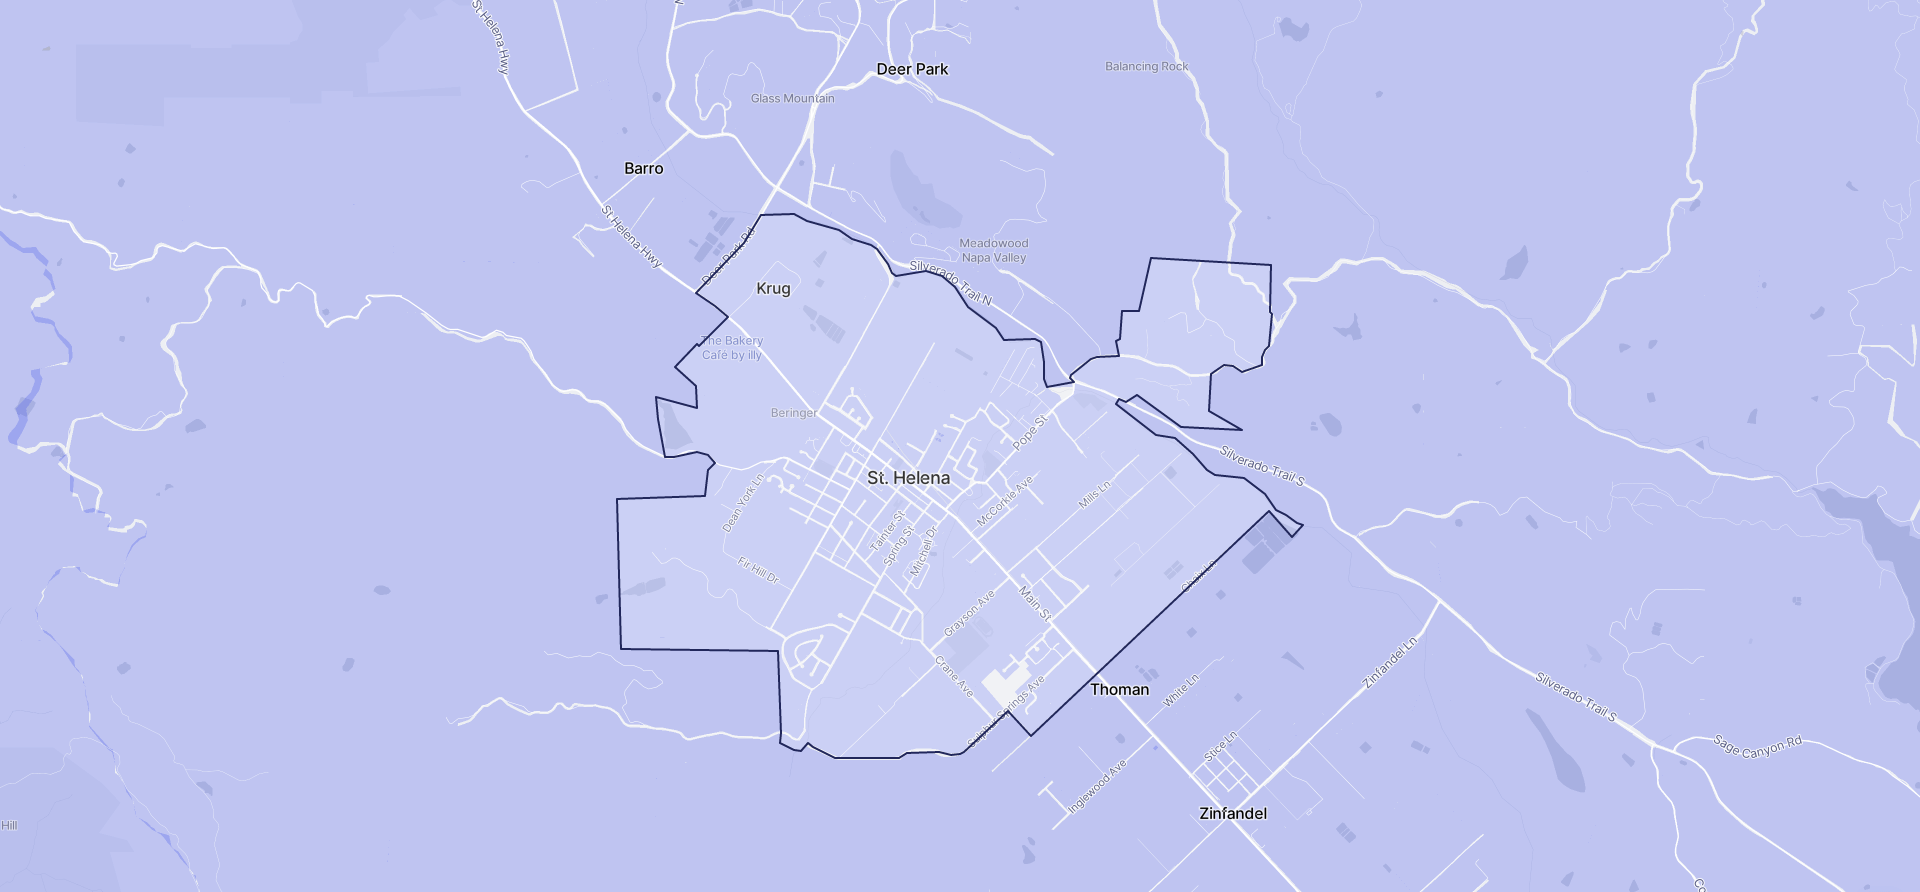 Image of St. Helena boundaries on a map.